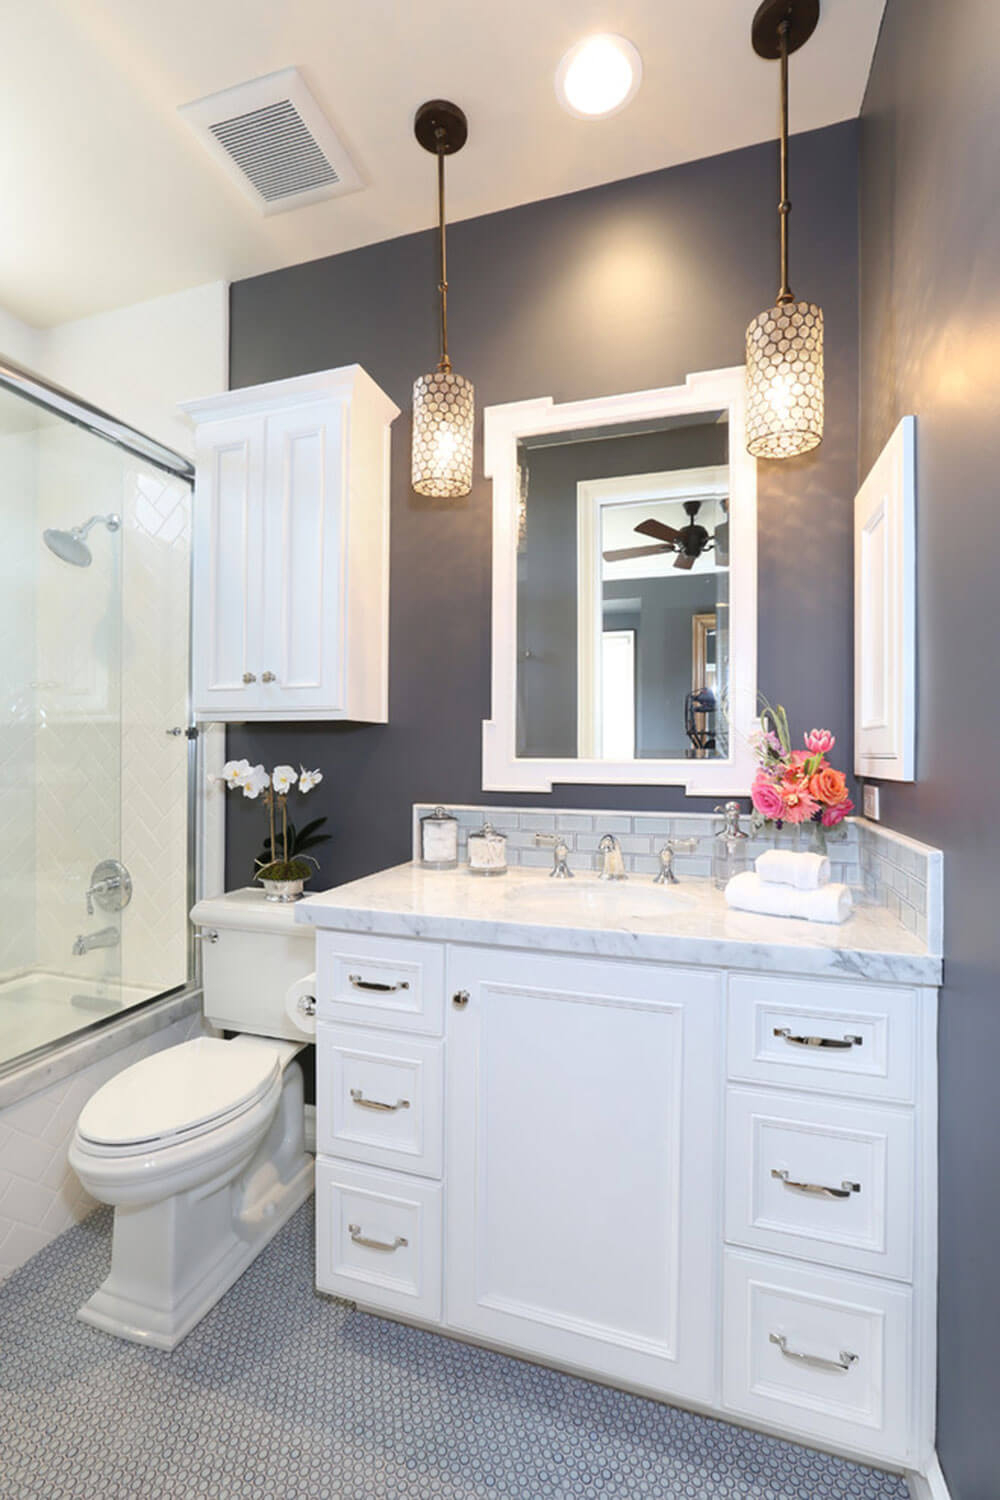 Epic 32 Best Small Bathroom Design Ideas And Decorations For 2018 with Ideas For Small Bathroom Remodel